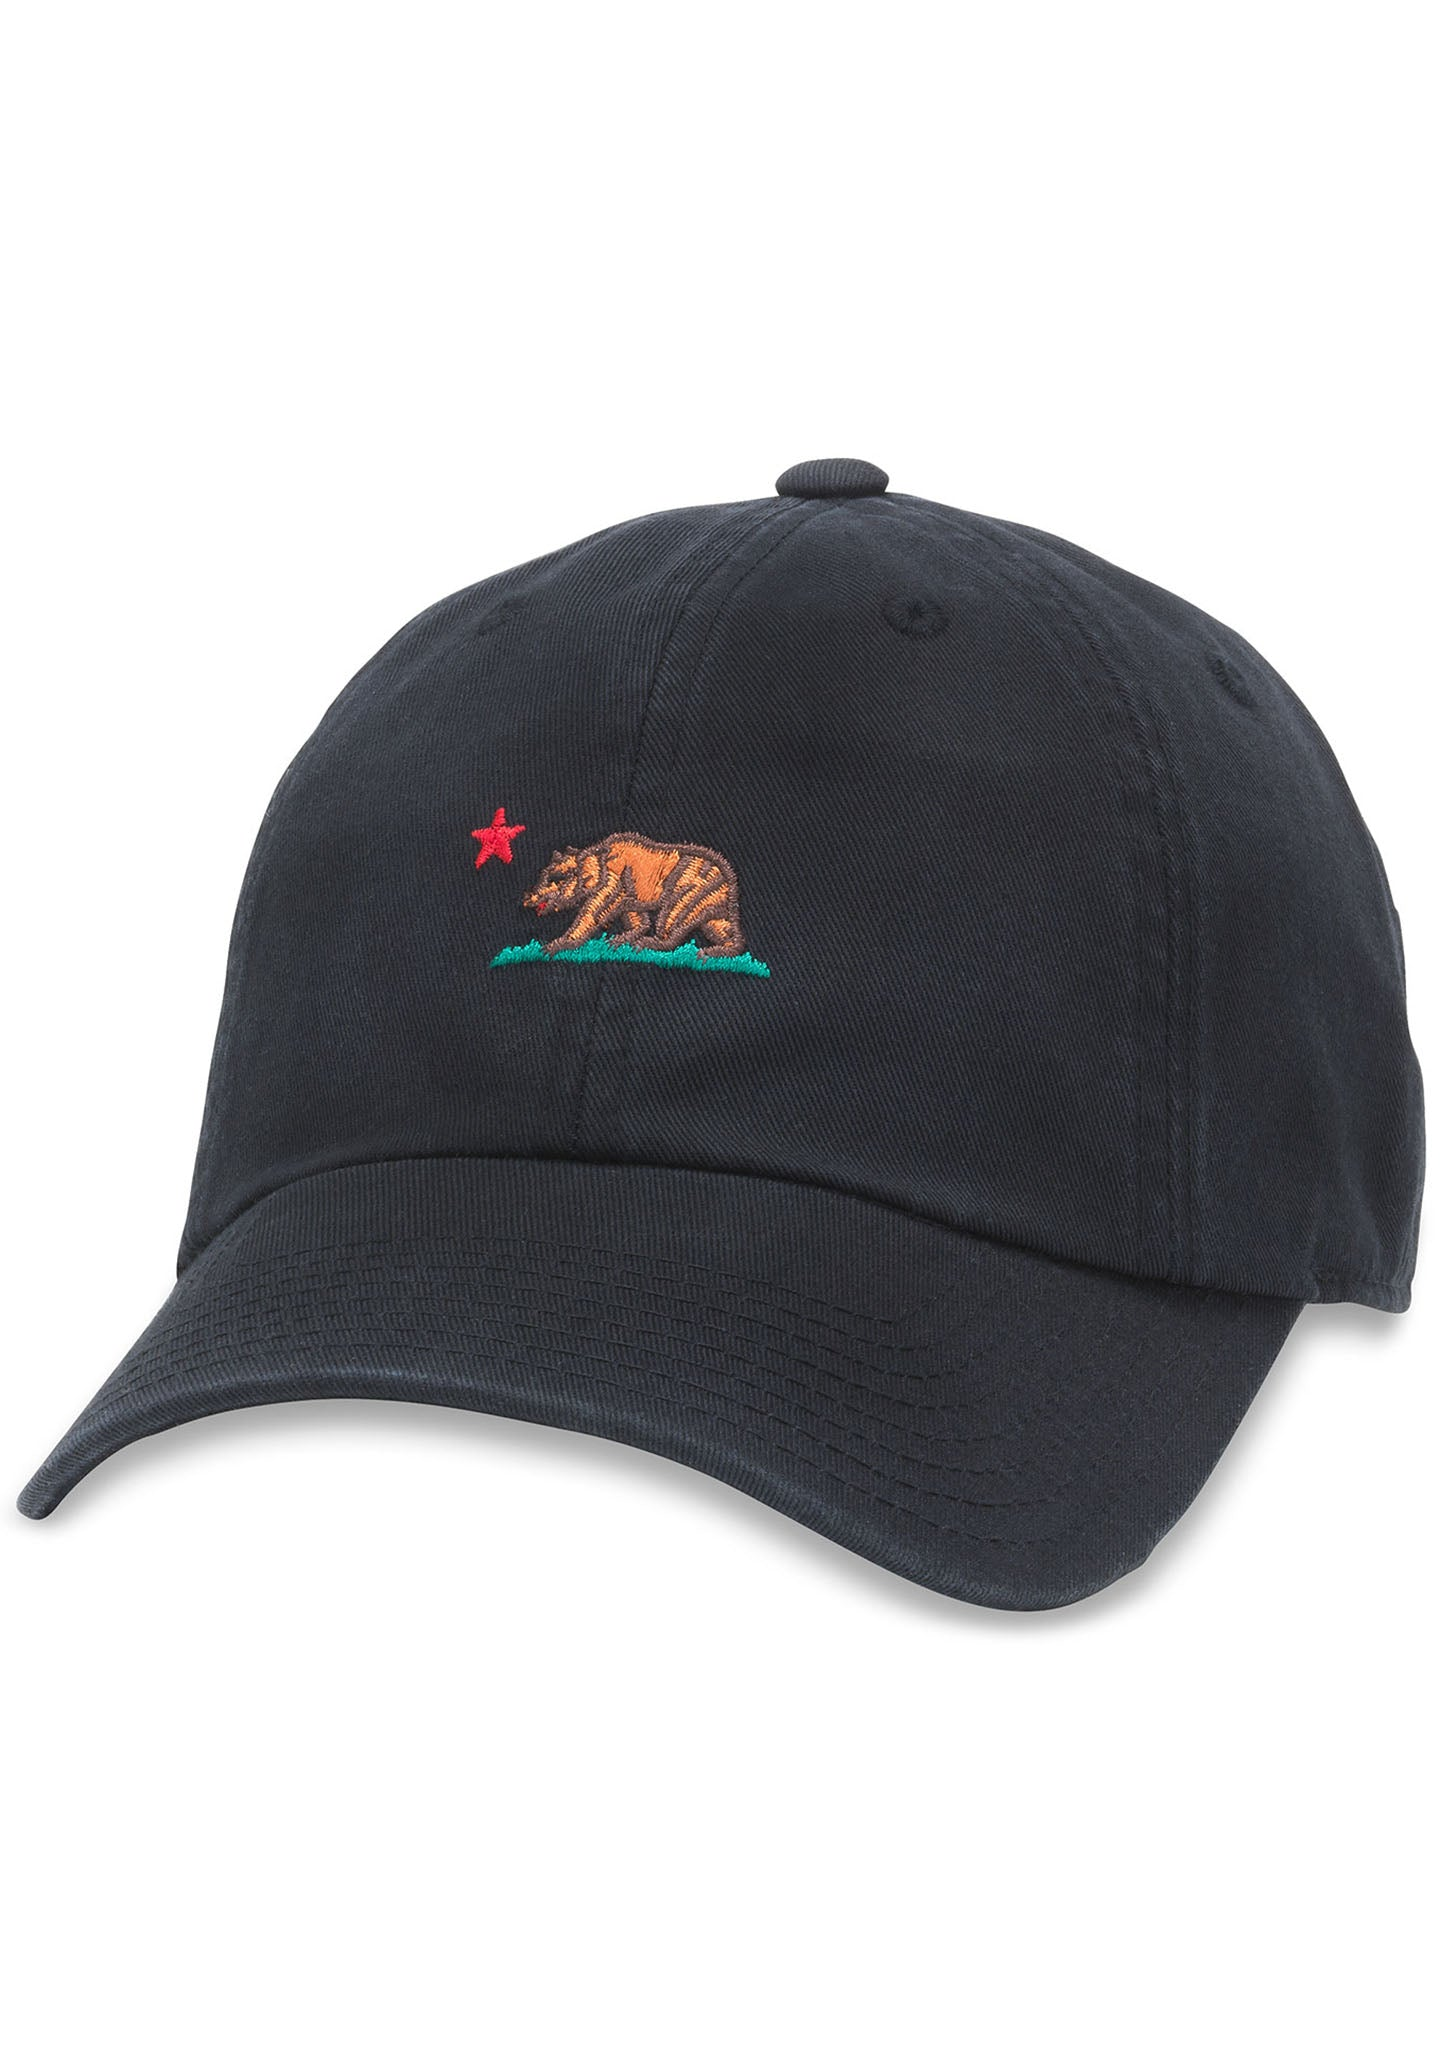 4c60eaba18f35 California Bear Micro Dad Hat in Black